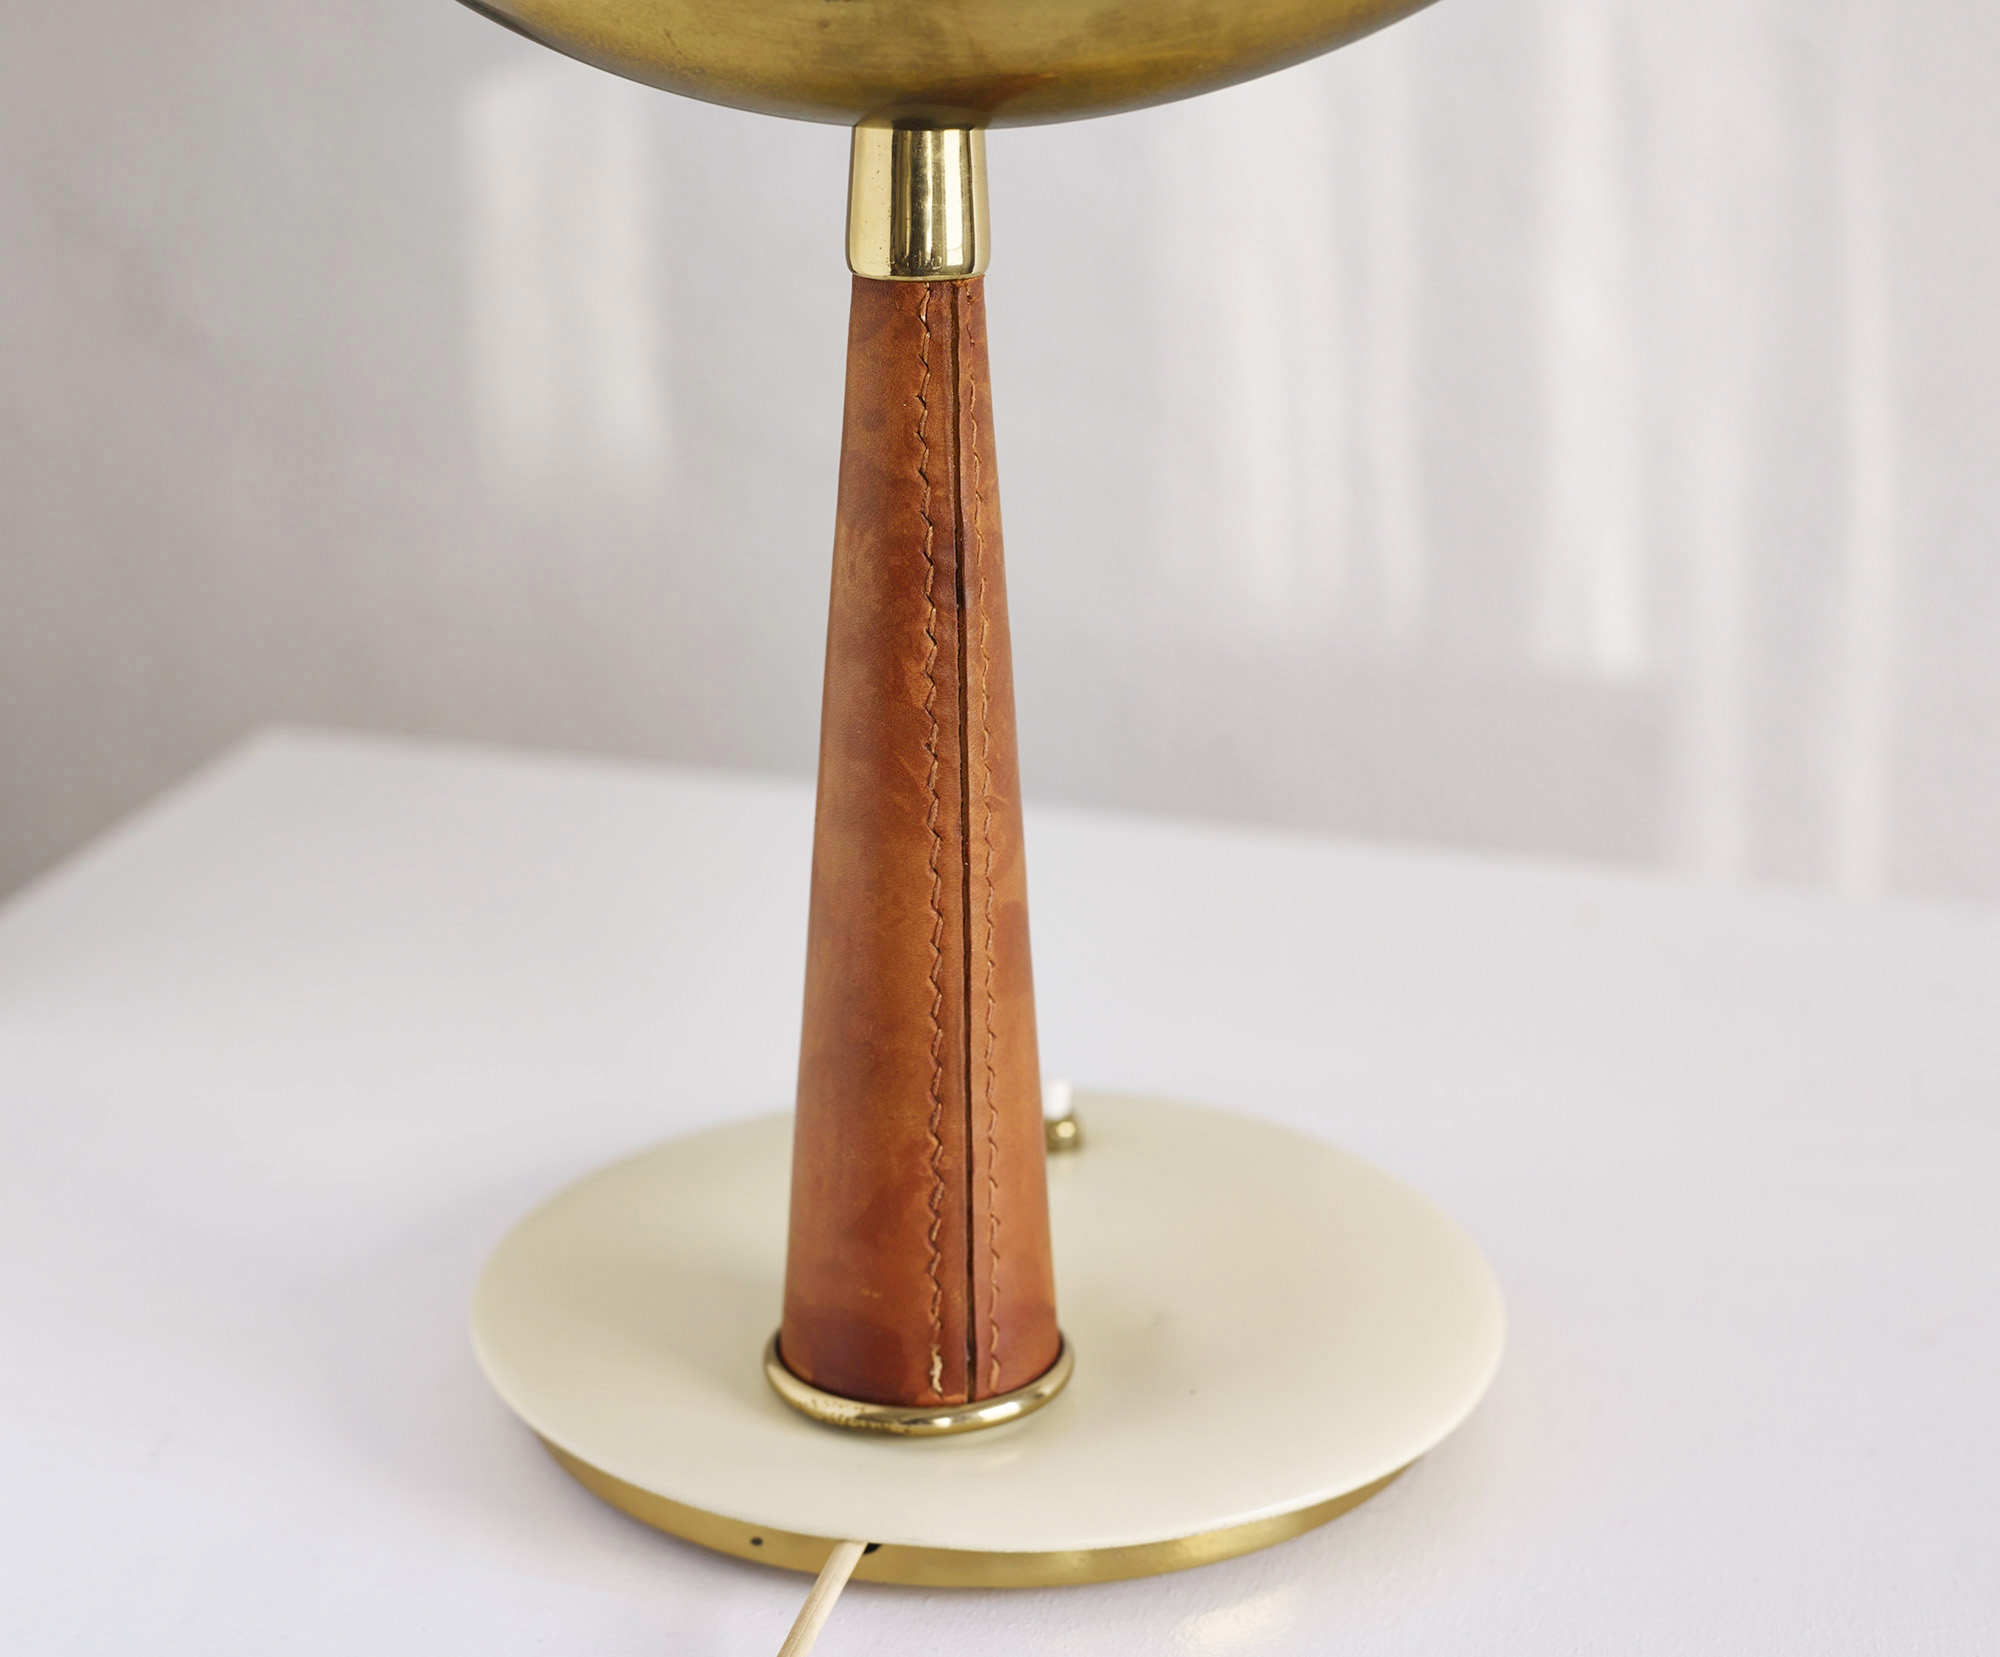 angelo-lelli-table-lamp-image-08